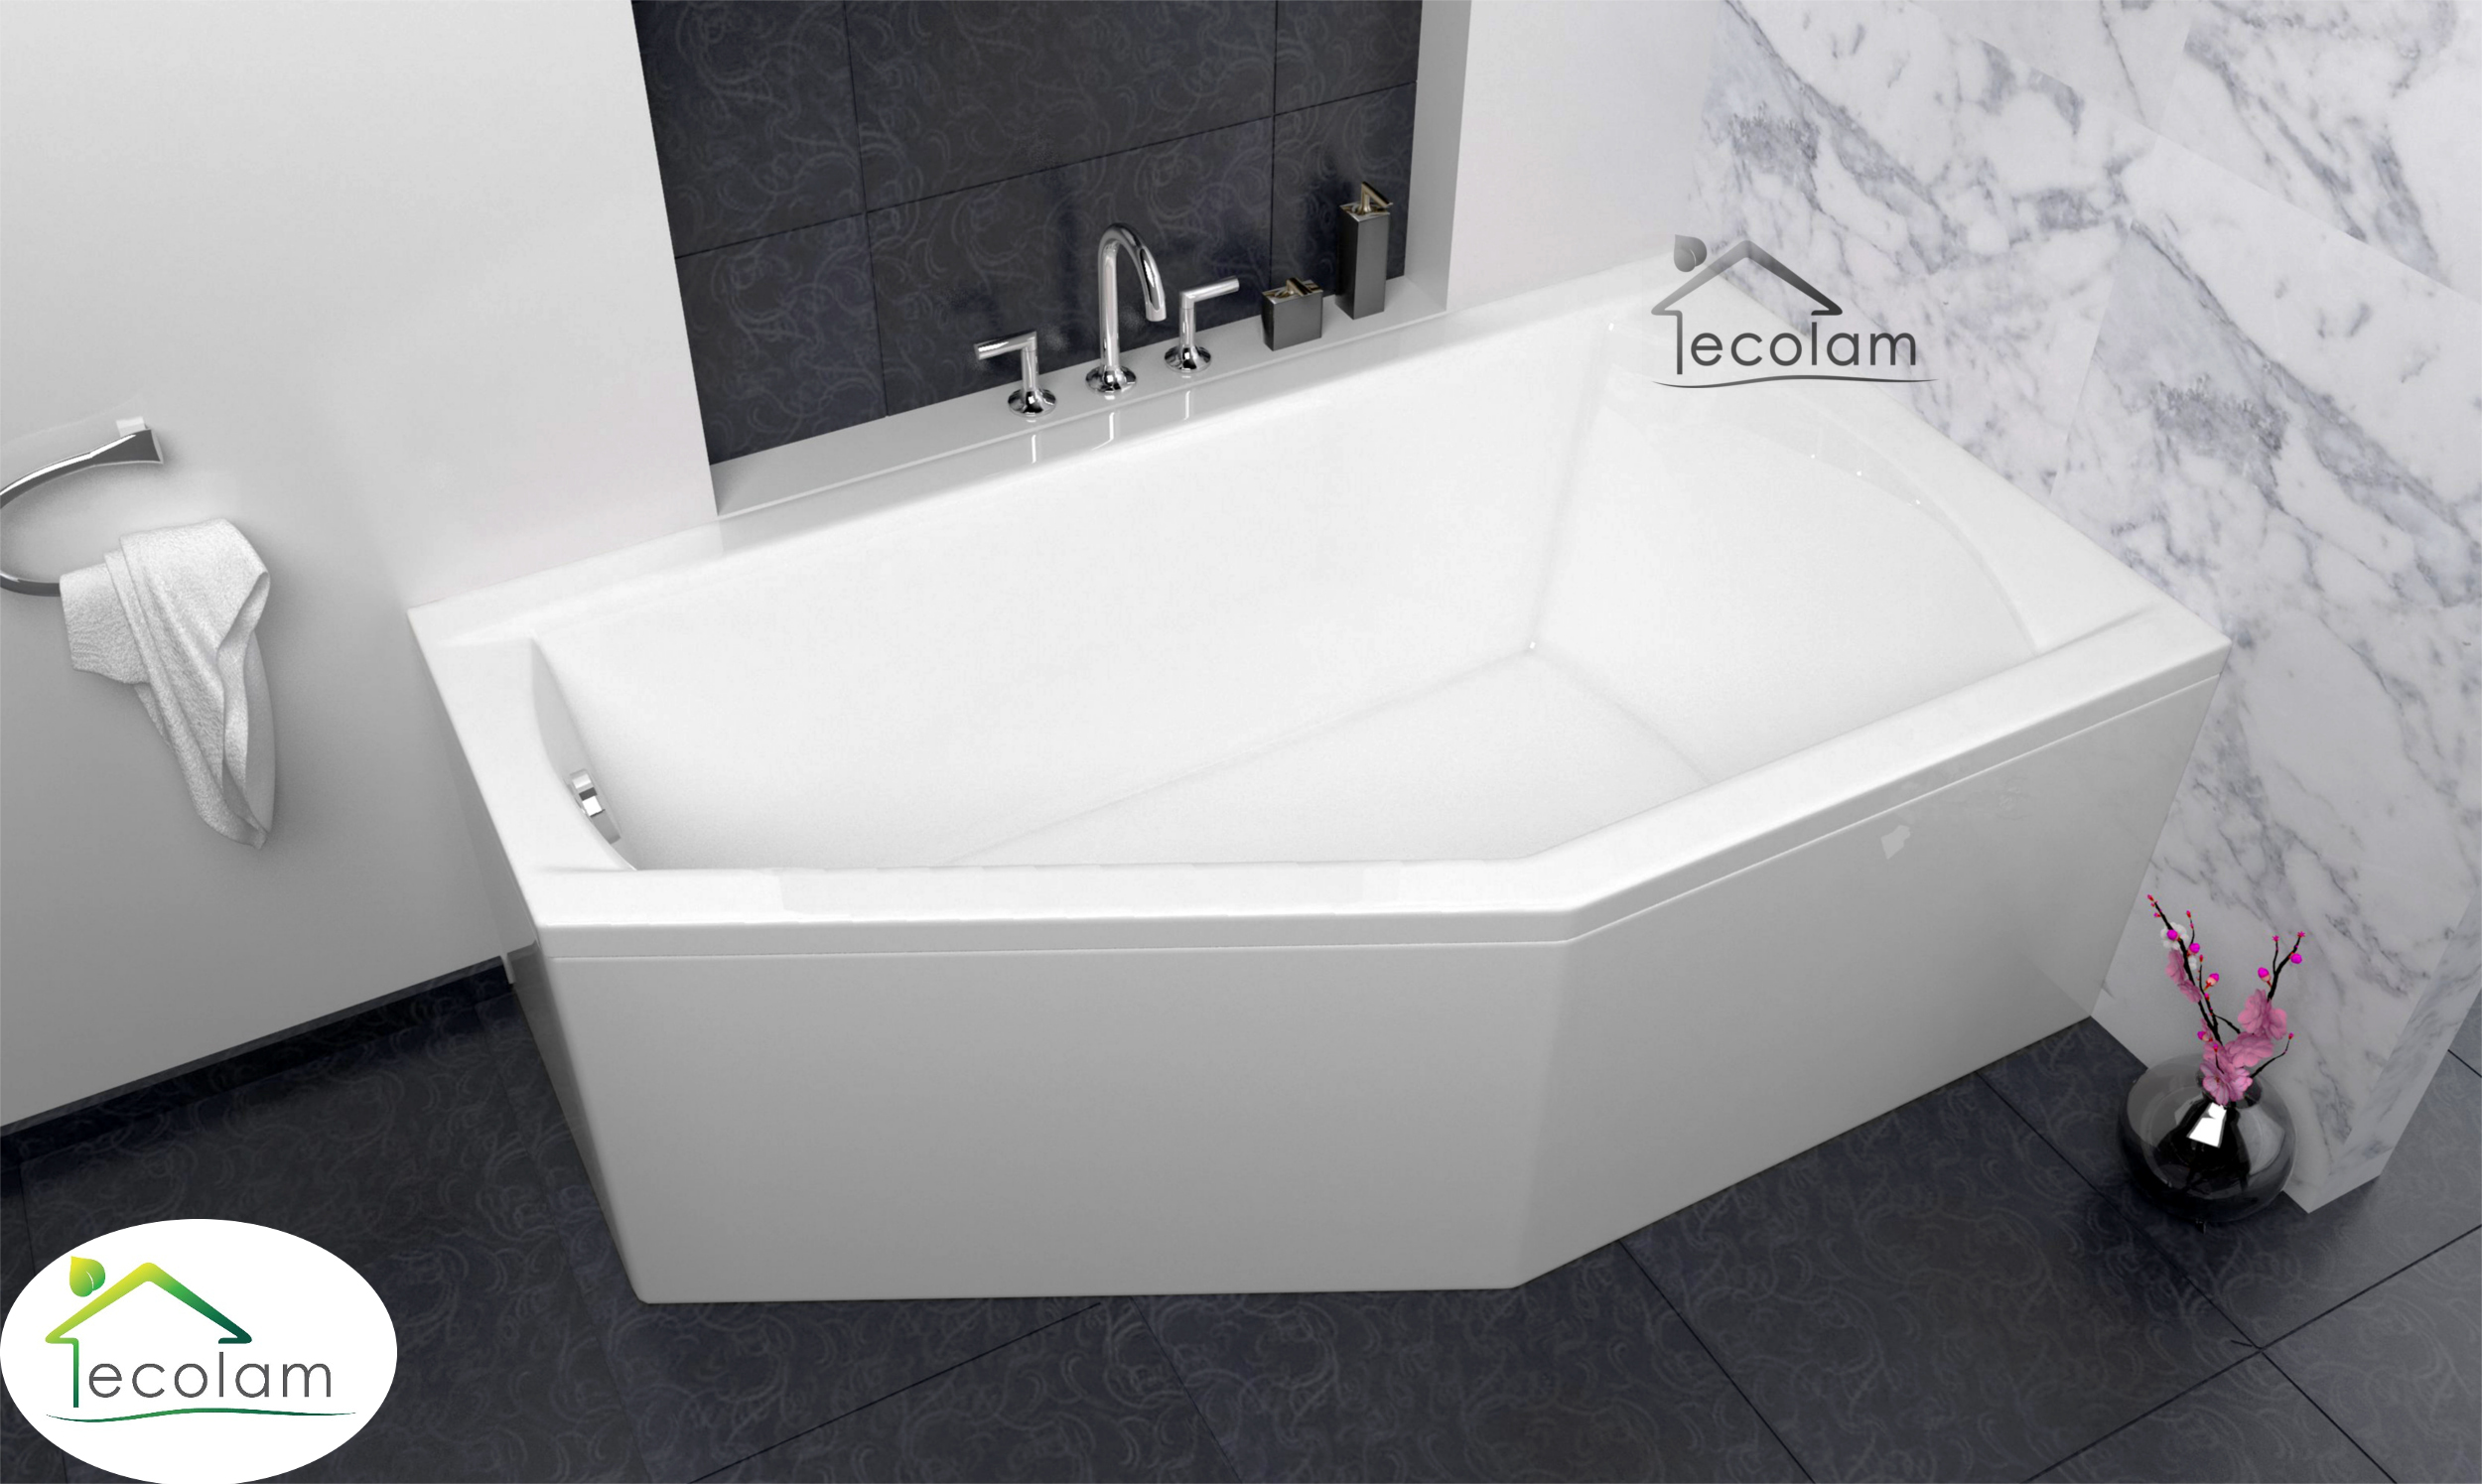 badewanne eckbadewanne acryl 160 x 90 cm sch rze ablauf silikon f e rechts s ebay. Black Bedroom Furniture Sets. Home Design Ideas